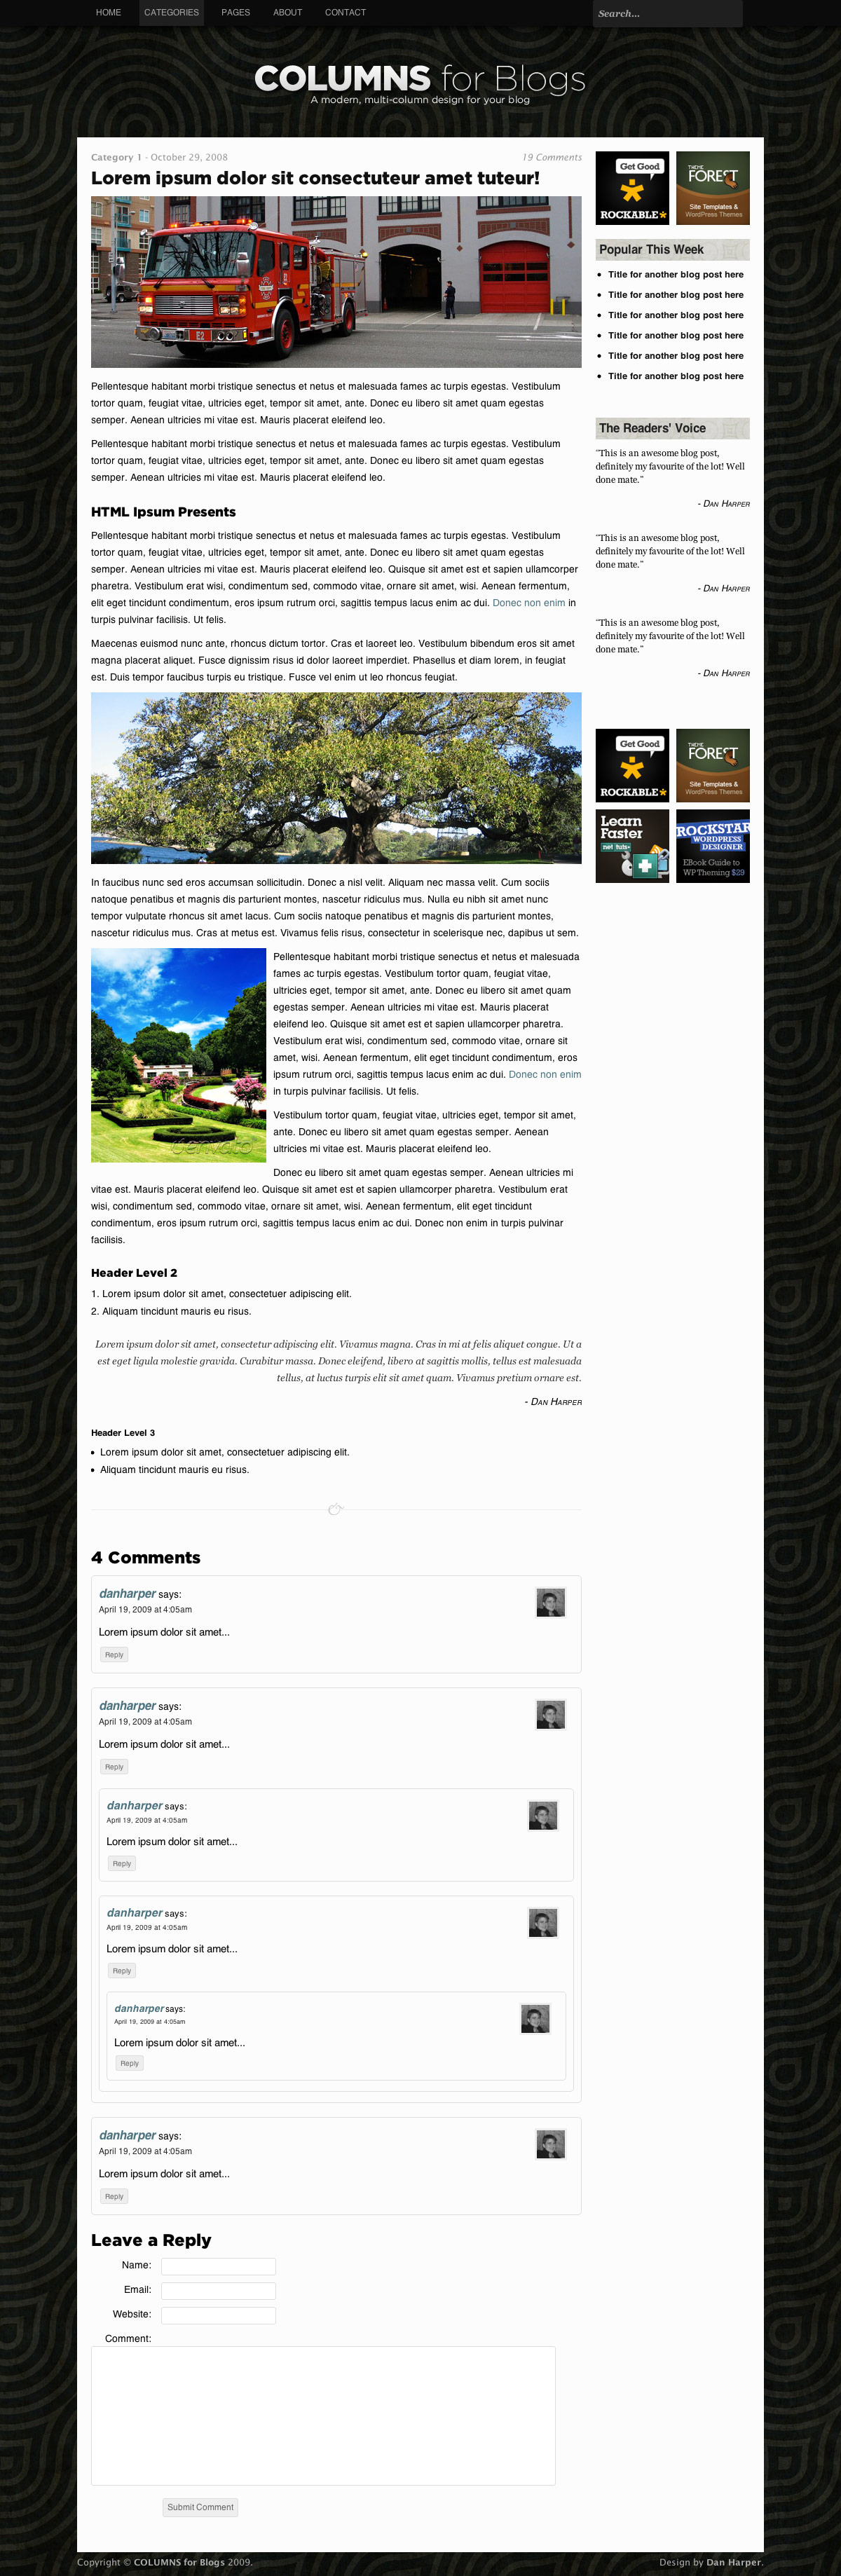 COLUMNS Blog Design - 2-column single post & comments page